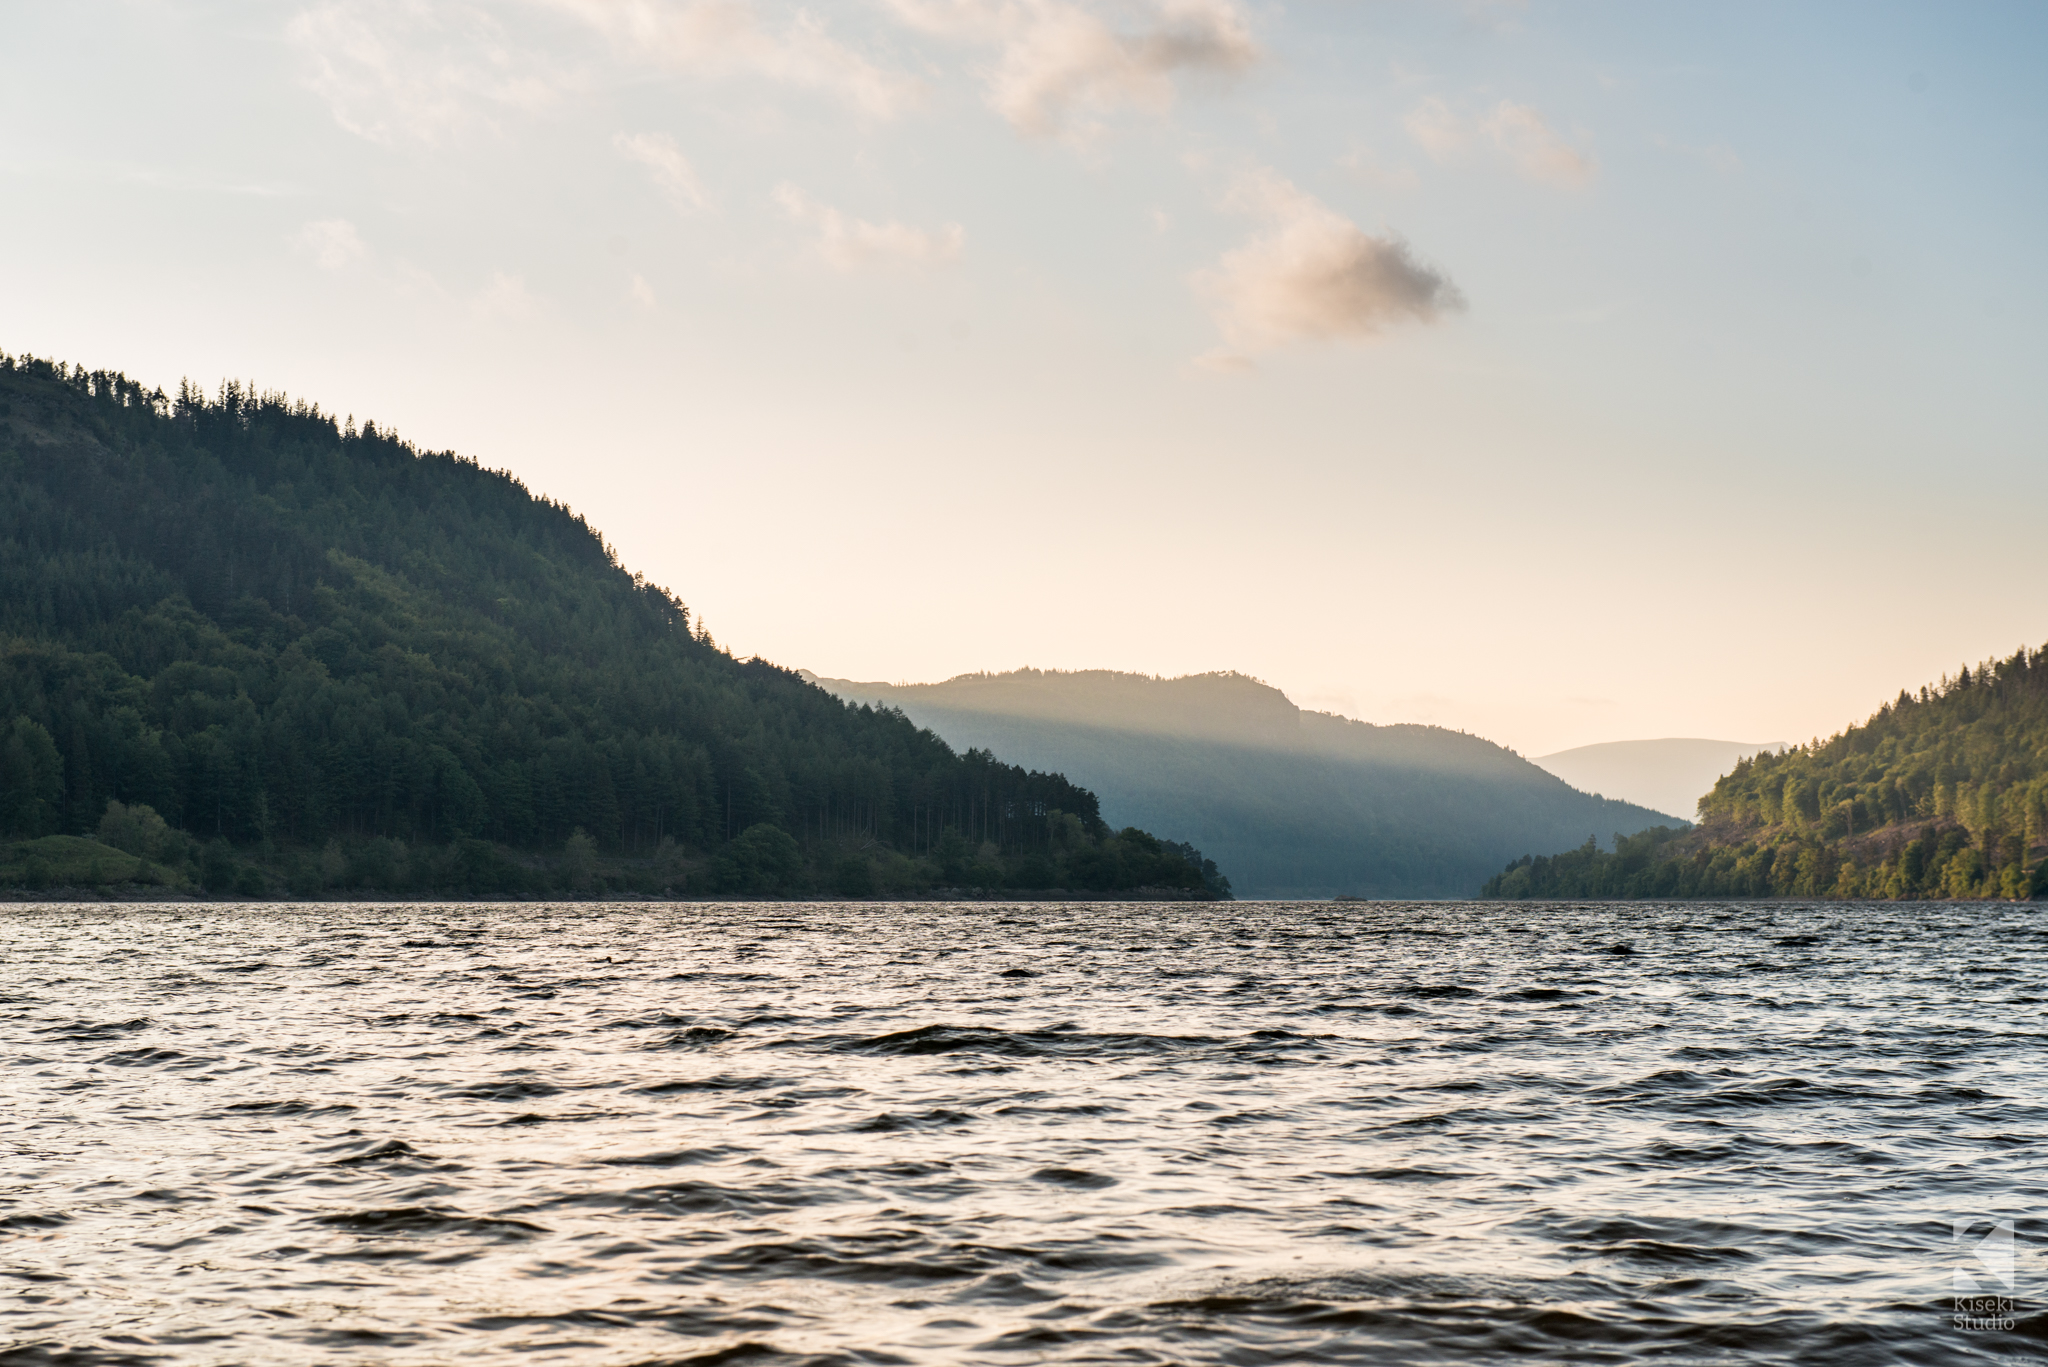 thirlmere-reservoir-sunset-summer-warm-moody-water-lake-district